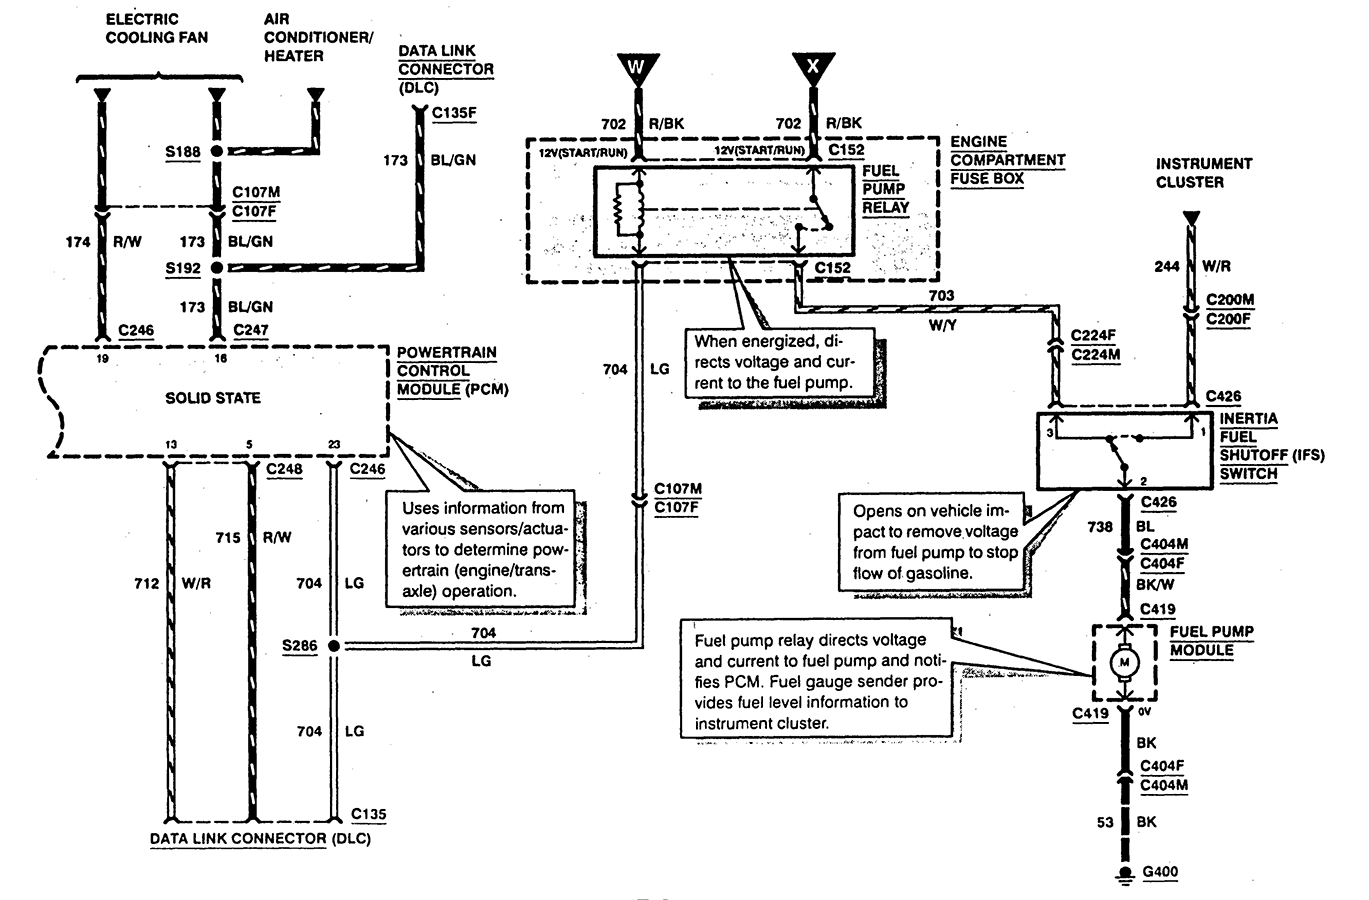 ford probe fuel pump diagram my 95 probe wont run i checked power to the fuel pump ...